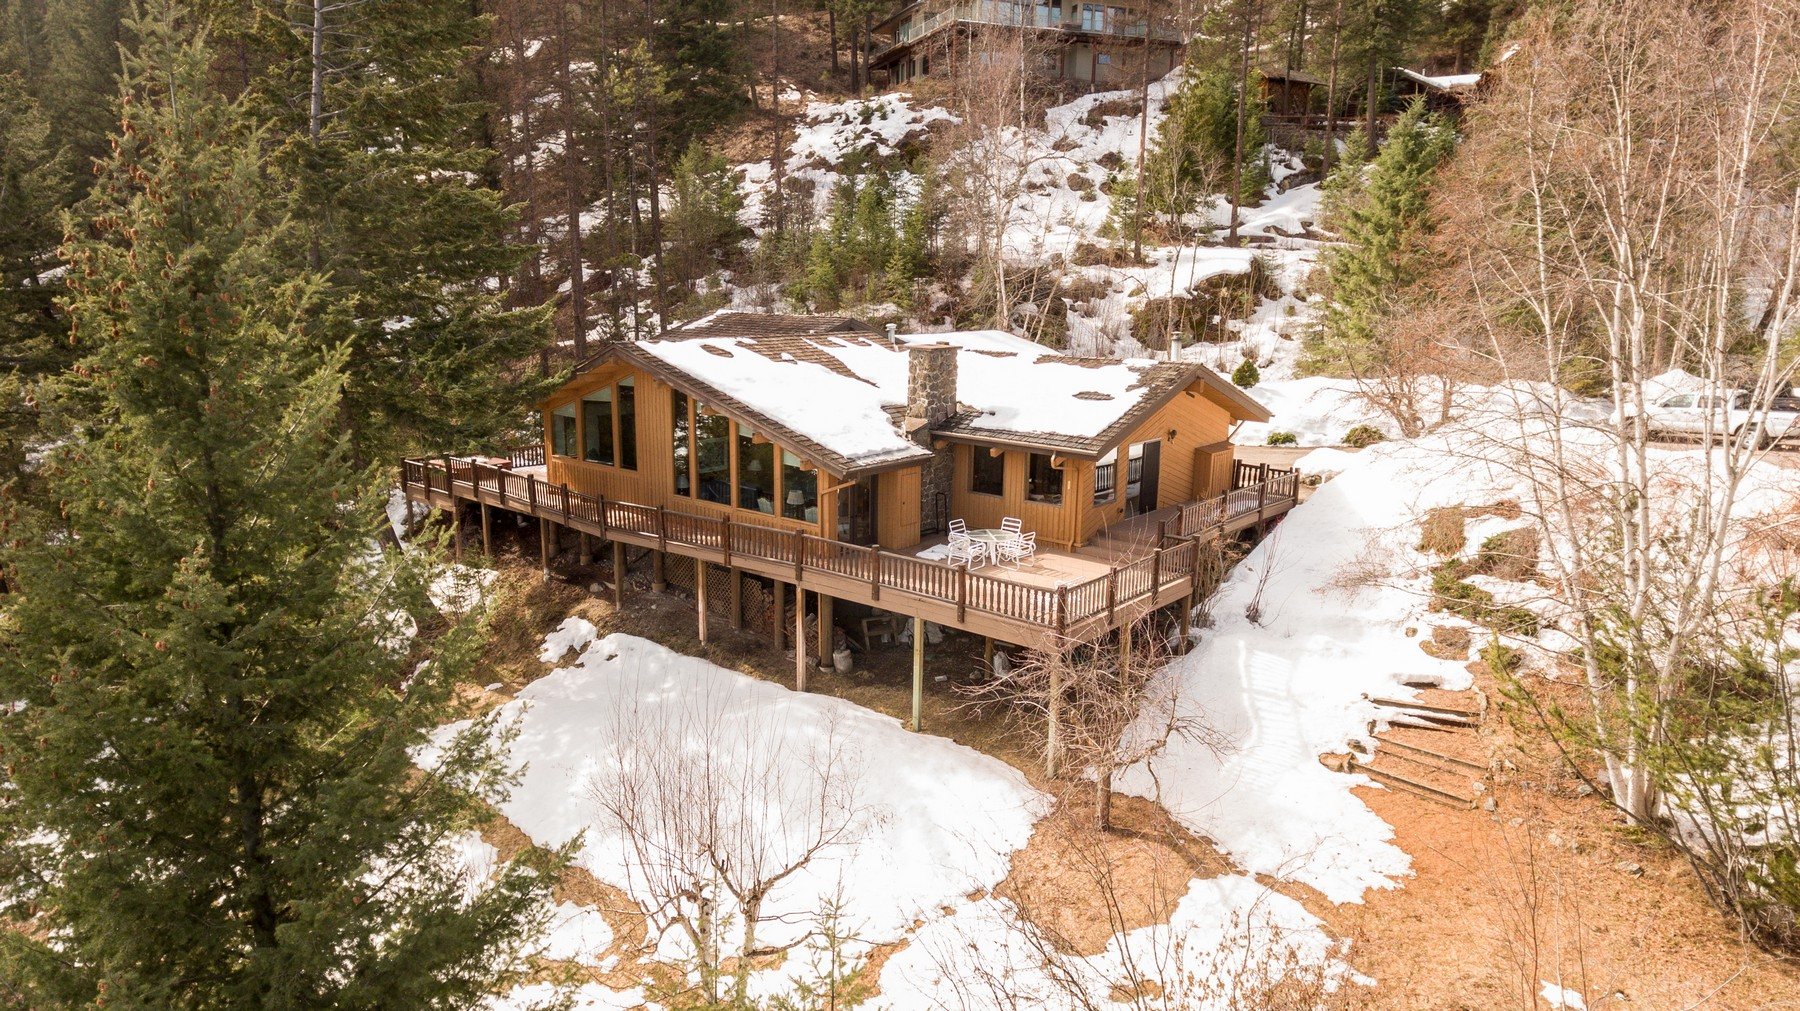 Additional photo for property listing at 1435 Lakeview Ln , Whitefish, MT 59937 1435  Lakeview Ln Whitefish, Montana 59937 United States